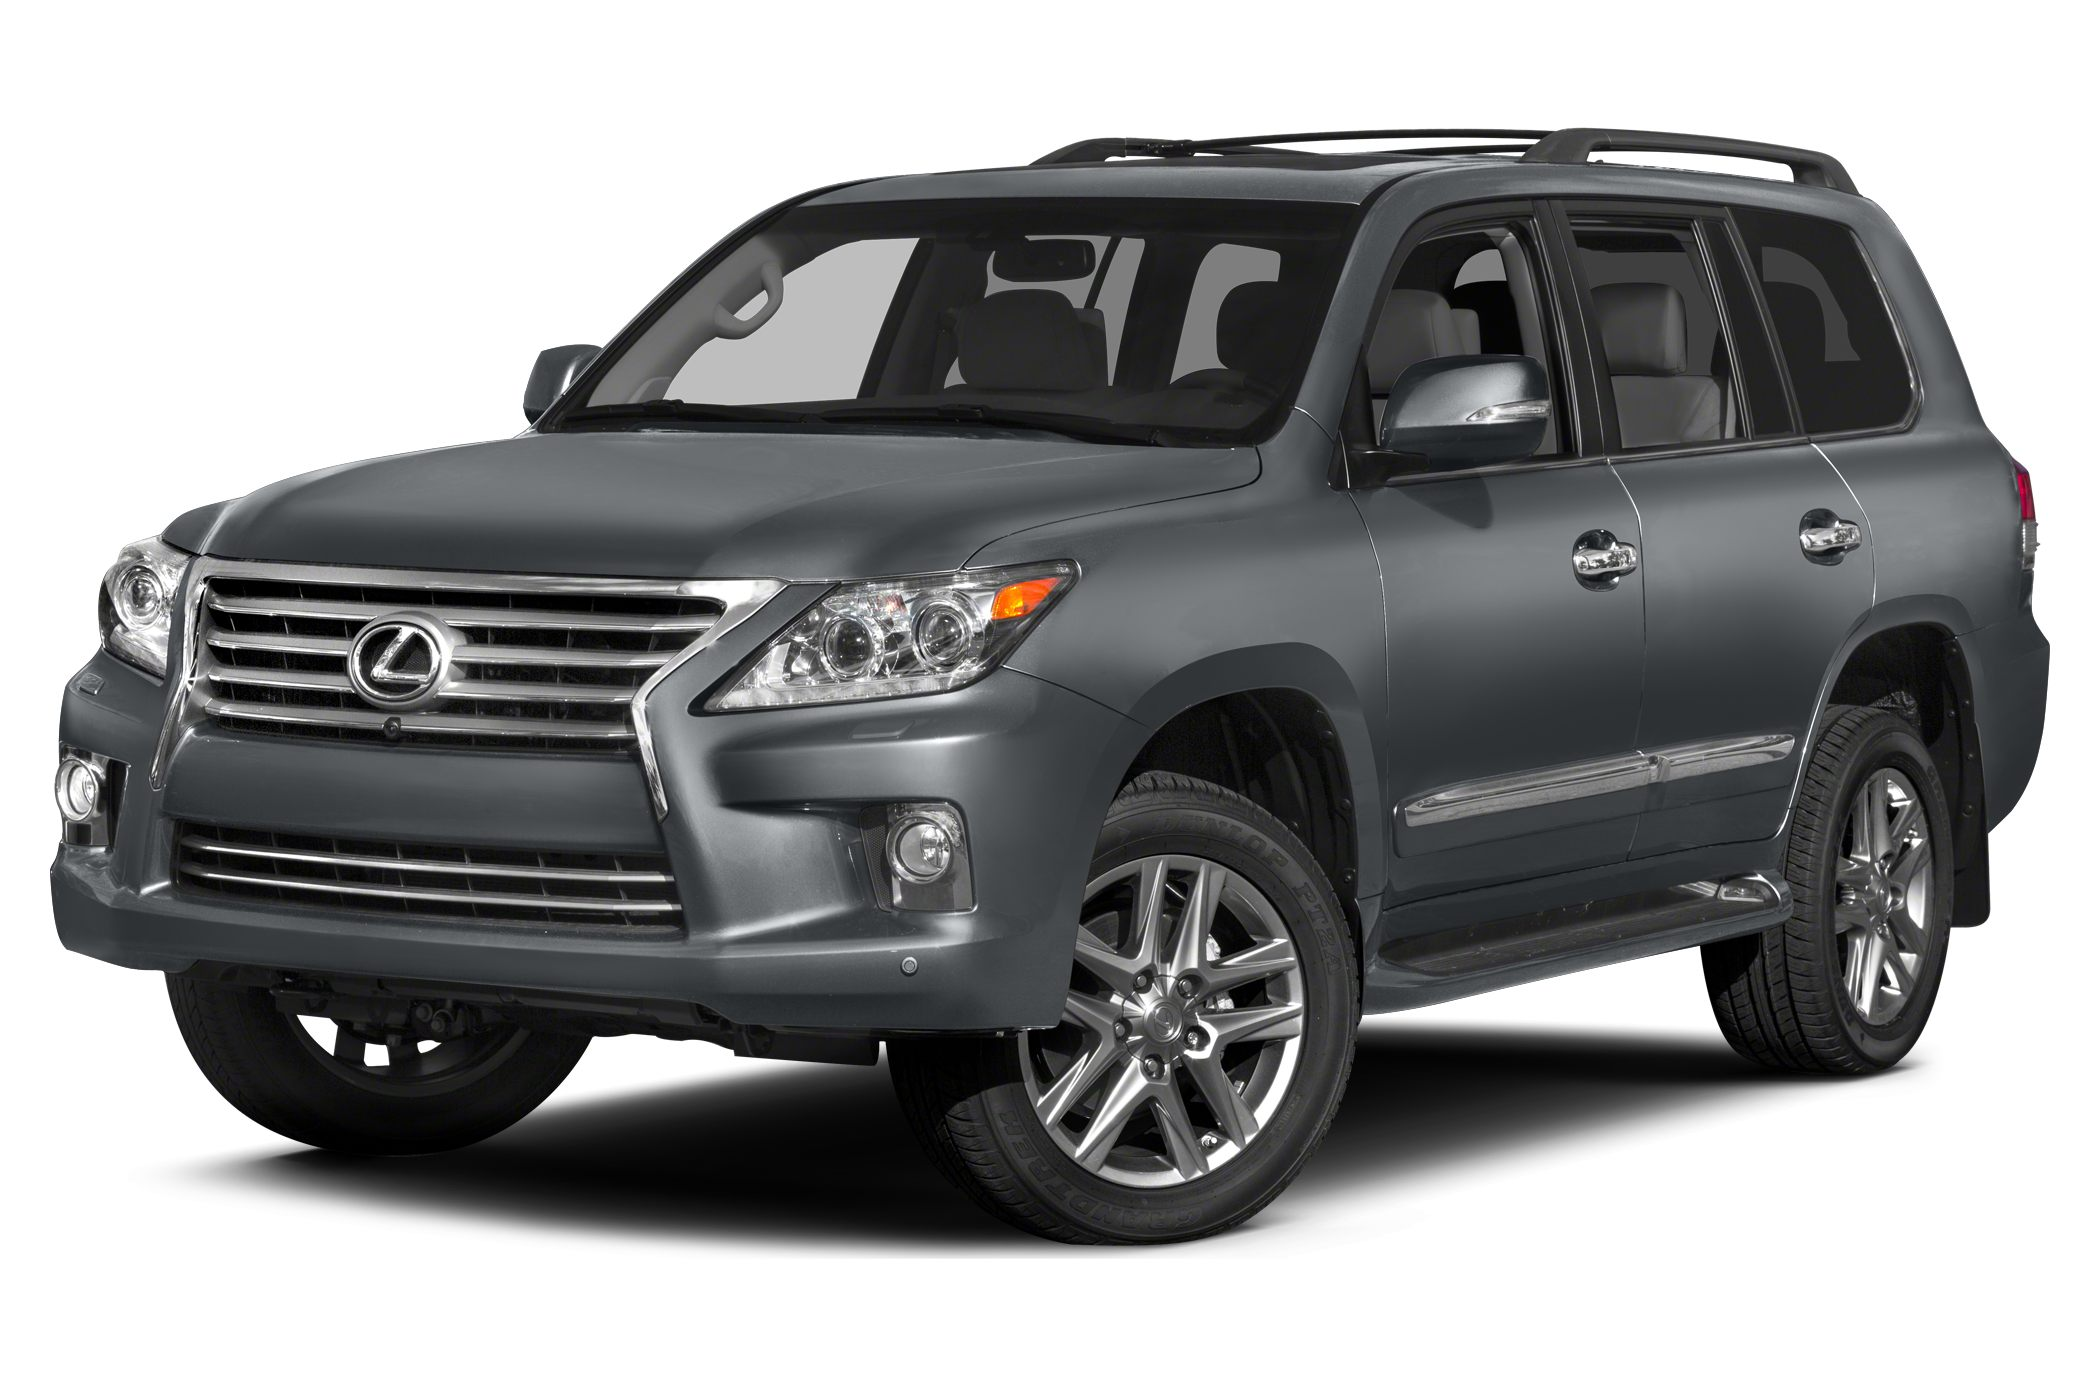 2015 Lexus LX 570 Base SUV for sale in Tulsa for $93,308 with 0 miles.